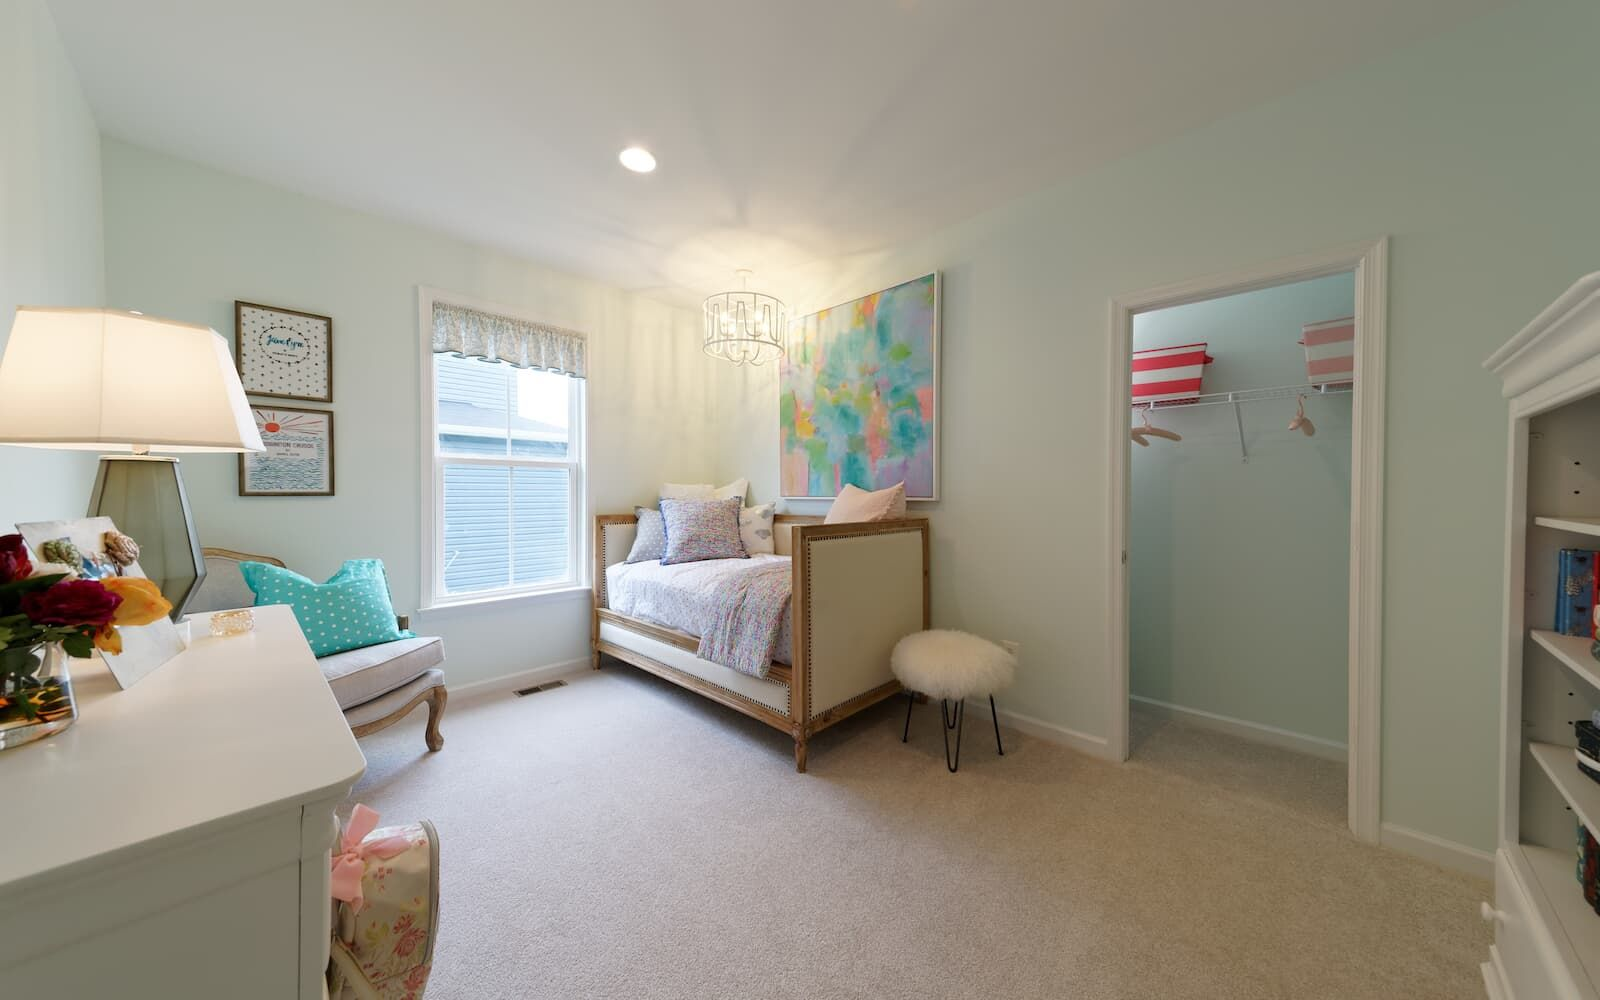 Bedroom featured in the Riverton By Brookfield Residential  in Washington, VA